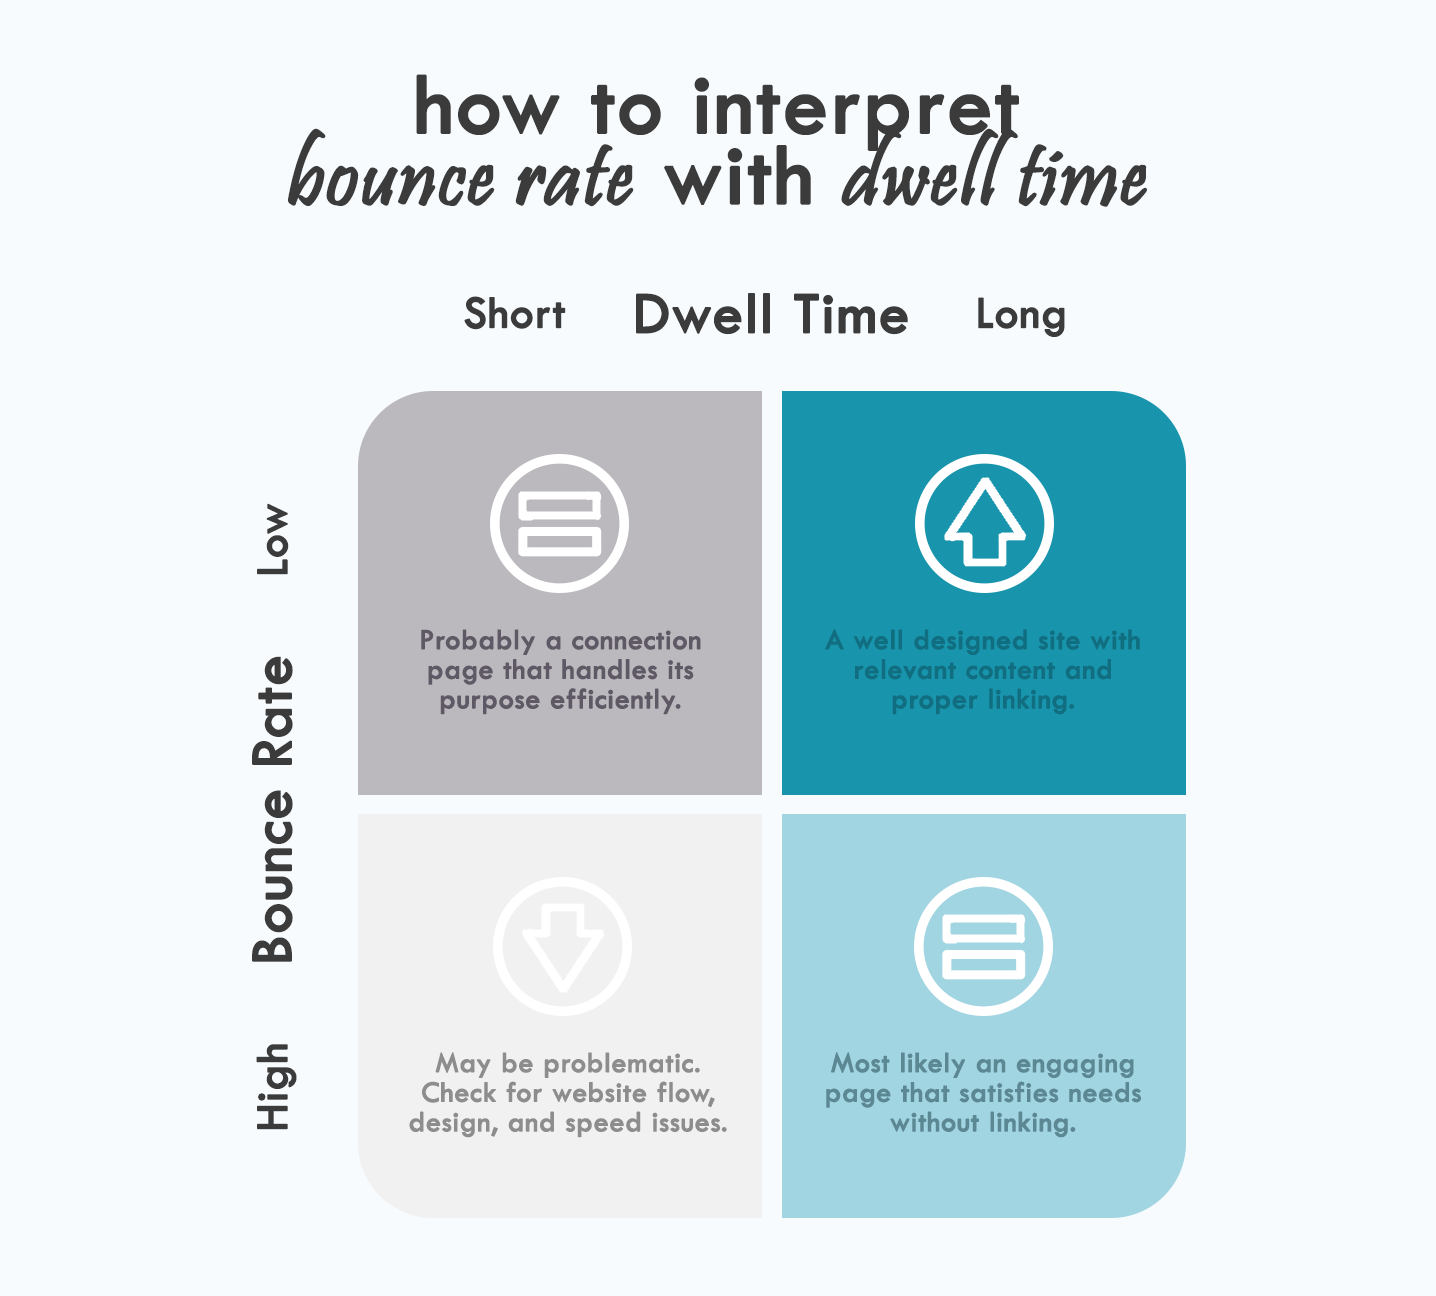 Second High Bounce Rate Is Often A Symptom Of Weakness In Other Seo Factors Here Are Just Few Problems You Might Want To Check For When Your